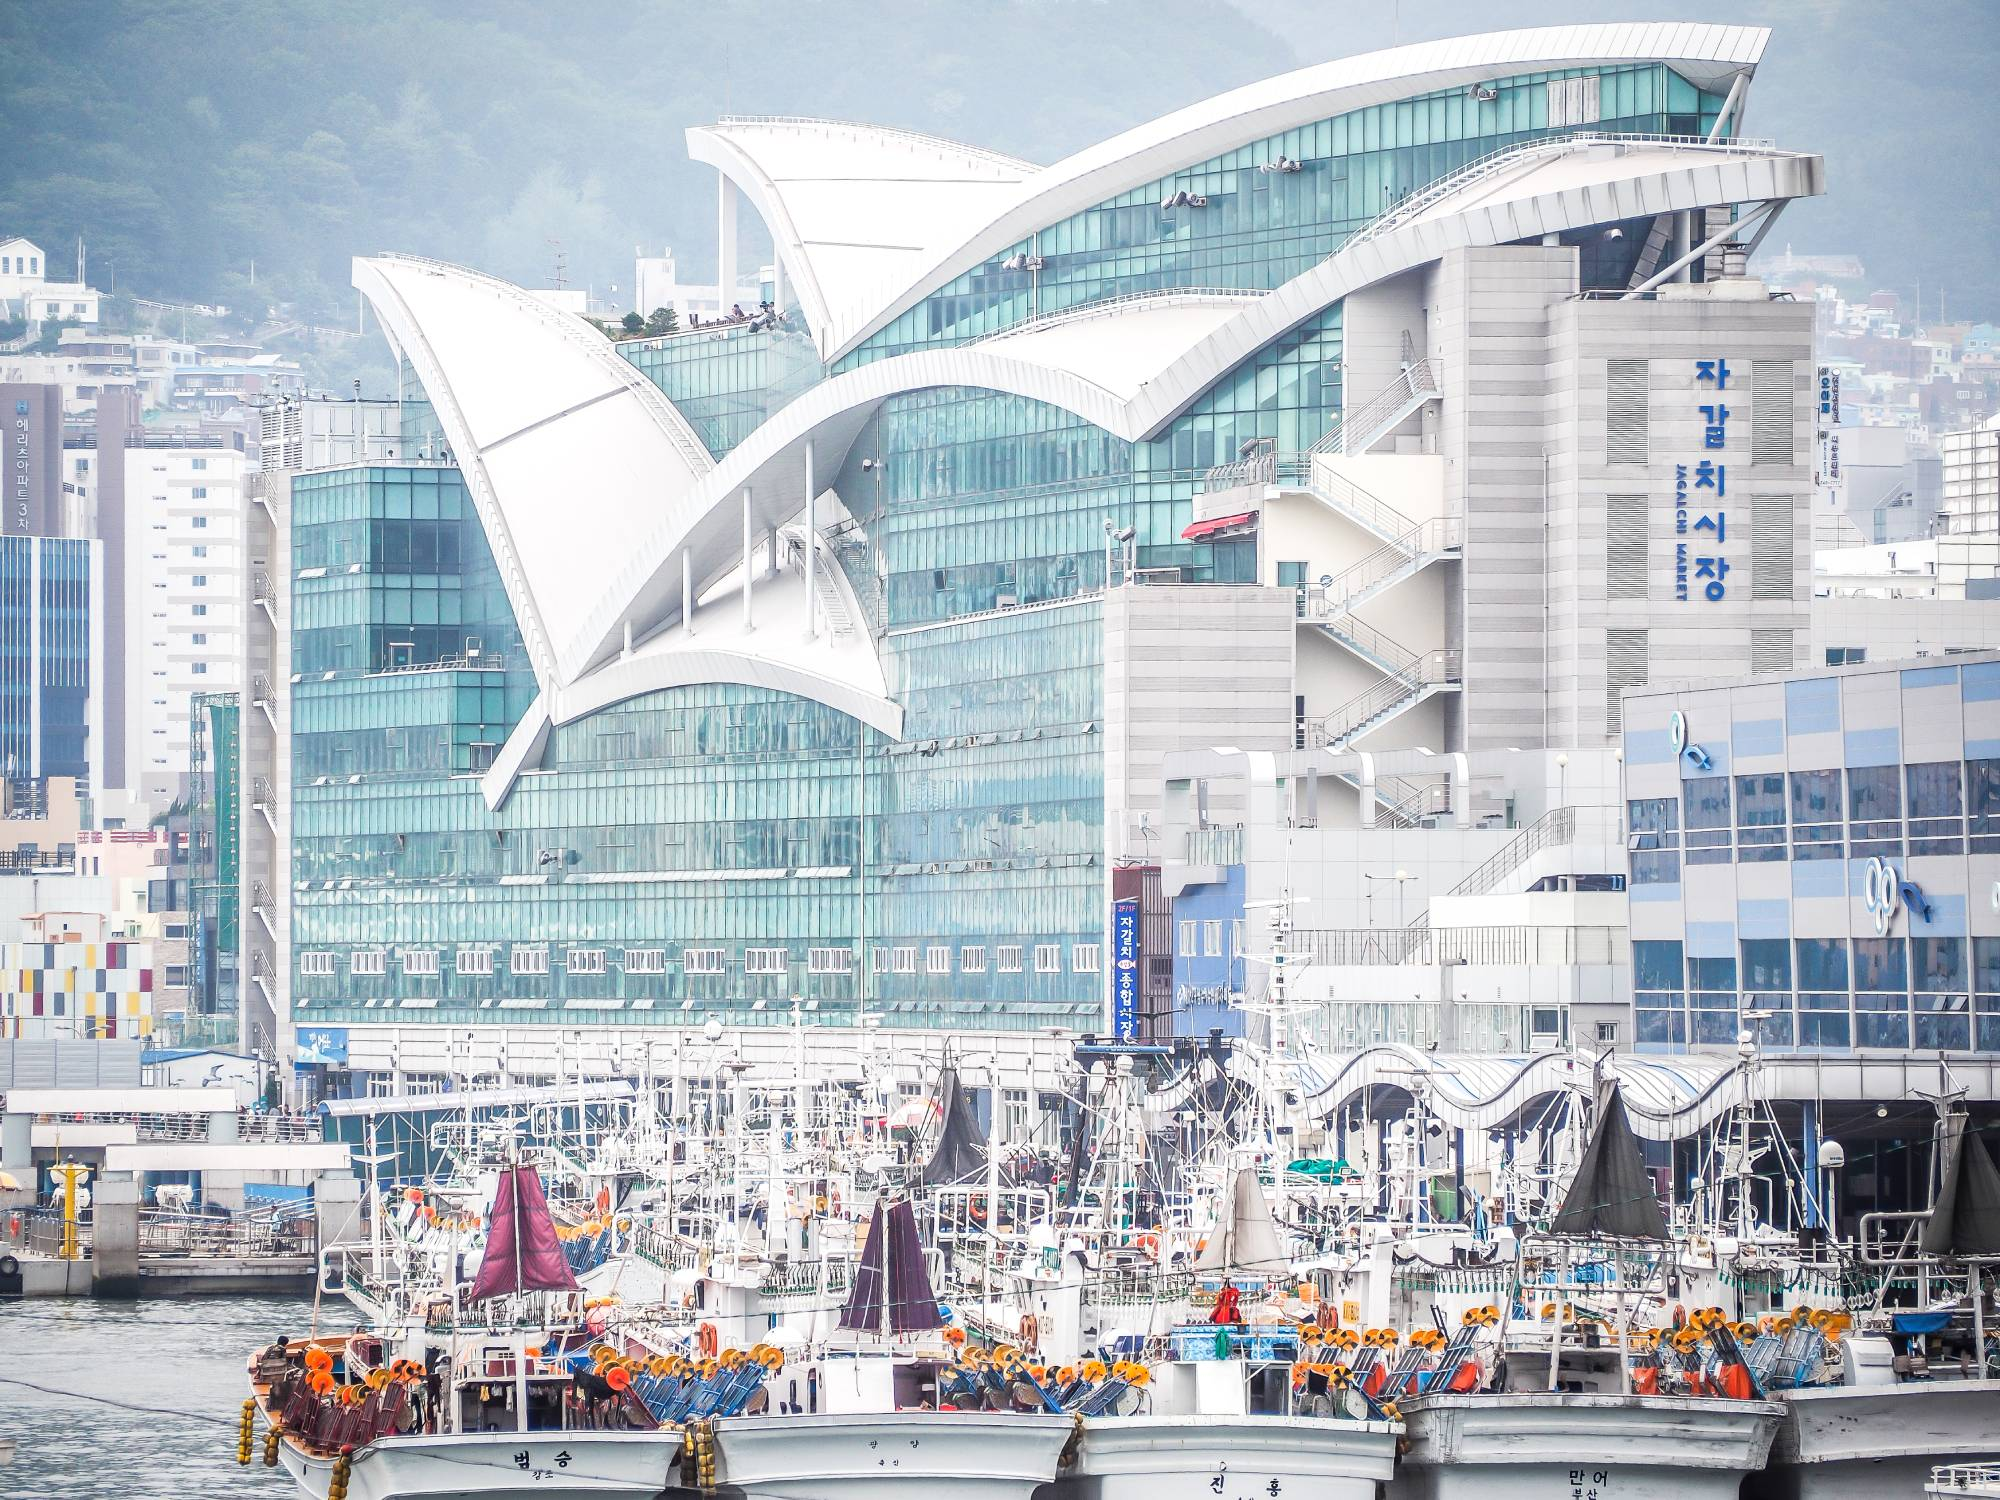 Jagalchi Fish Market, one of Busan's most popular sights, the way I saw it while walking across Yeongdo Bridge to reach the hotel every day. (Busan traditional market)